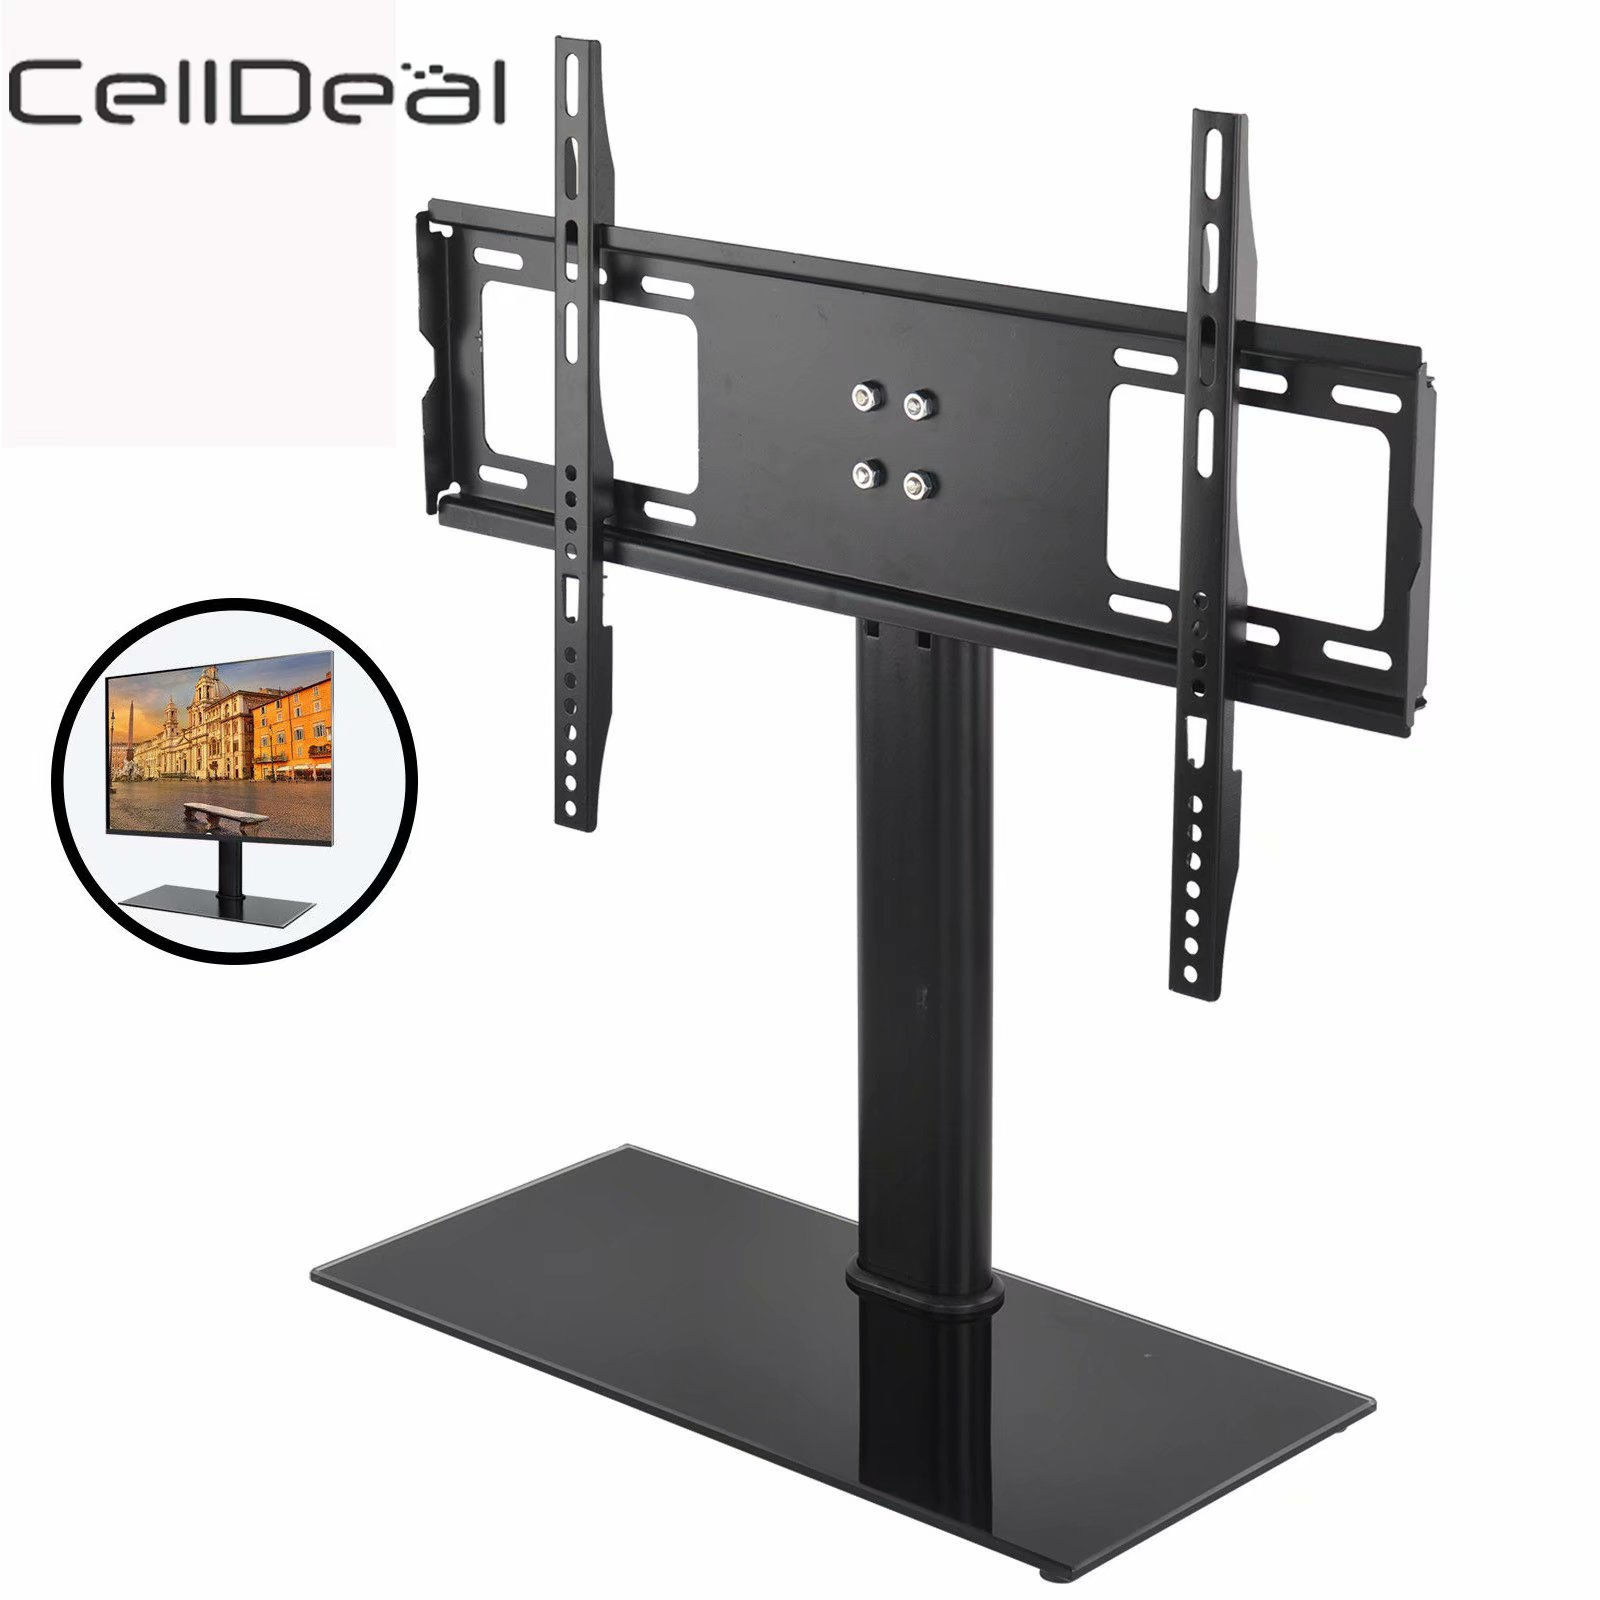 Support de Table universel réglable CellDeal support de Table support de Table LED LCD 37